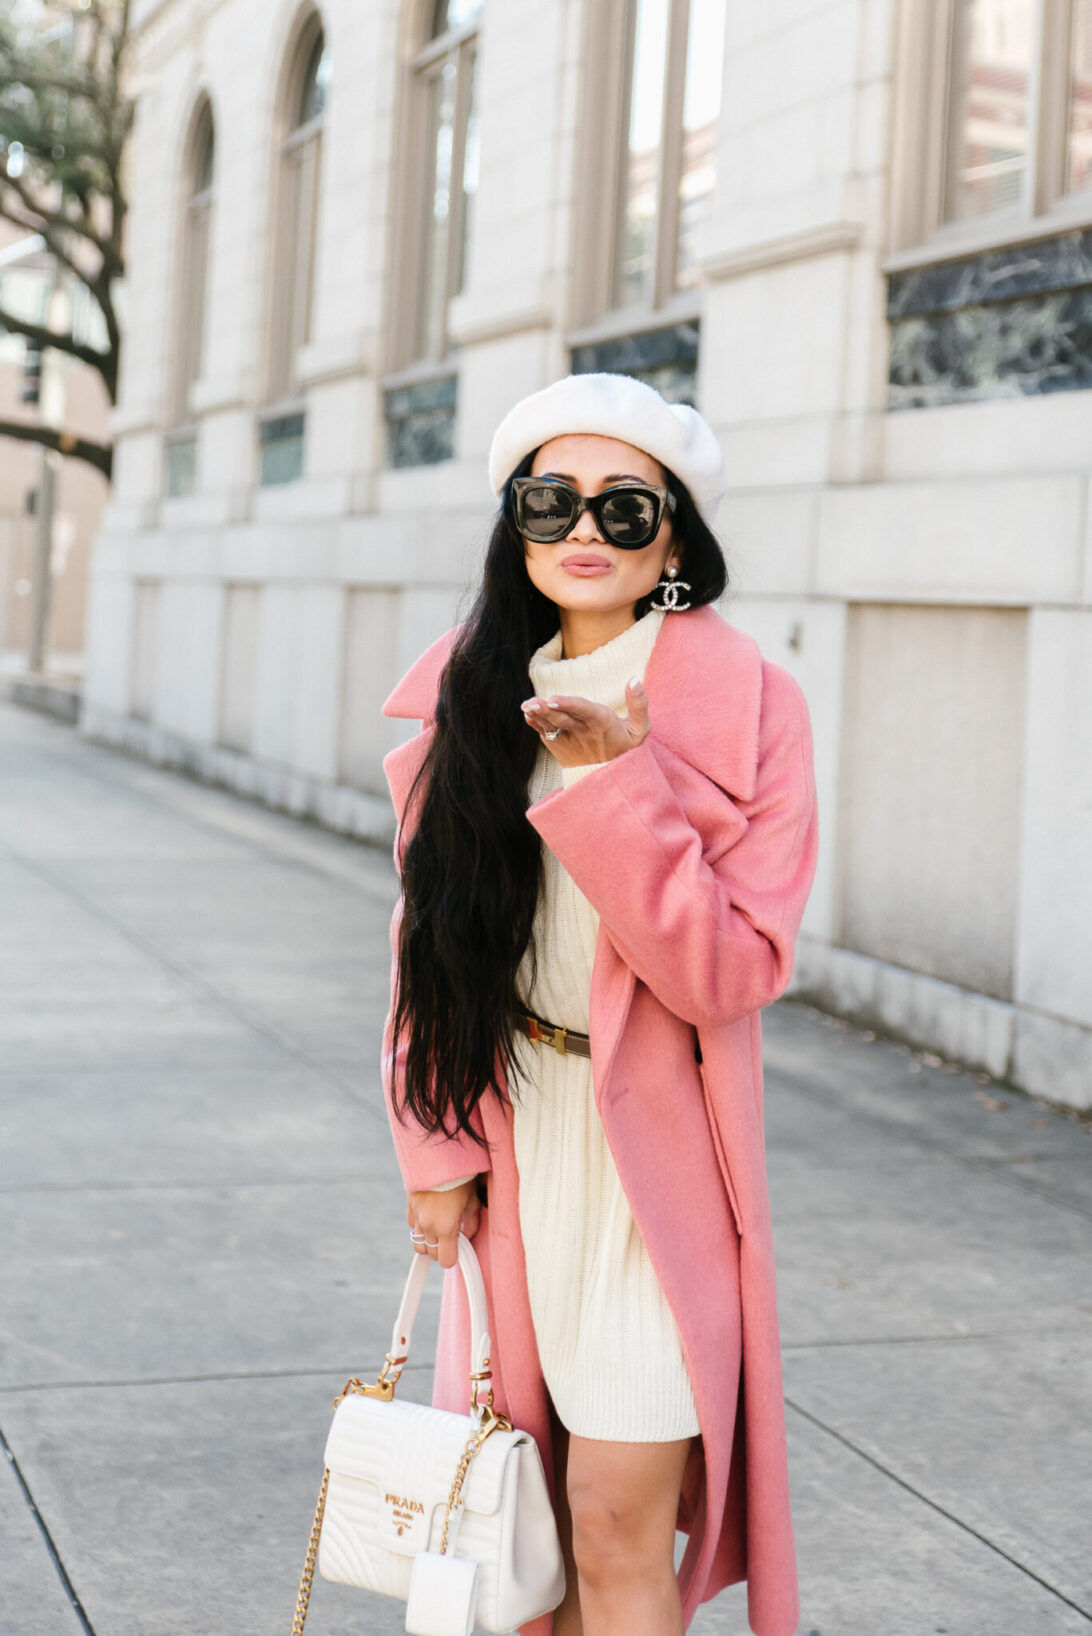 WINTER OUTFIT, VALENTINES OUTFIT, PRADA BAG, BERET